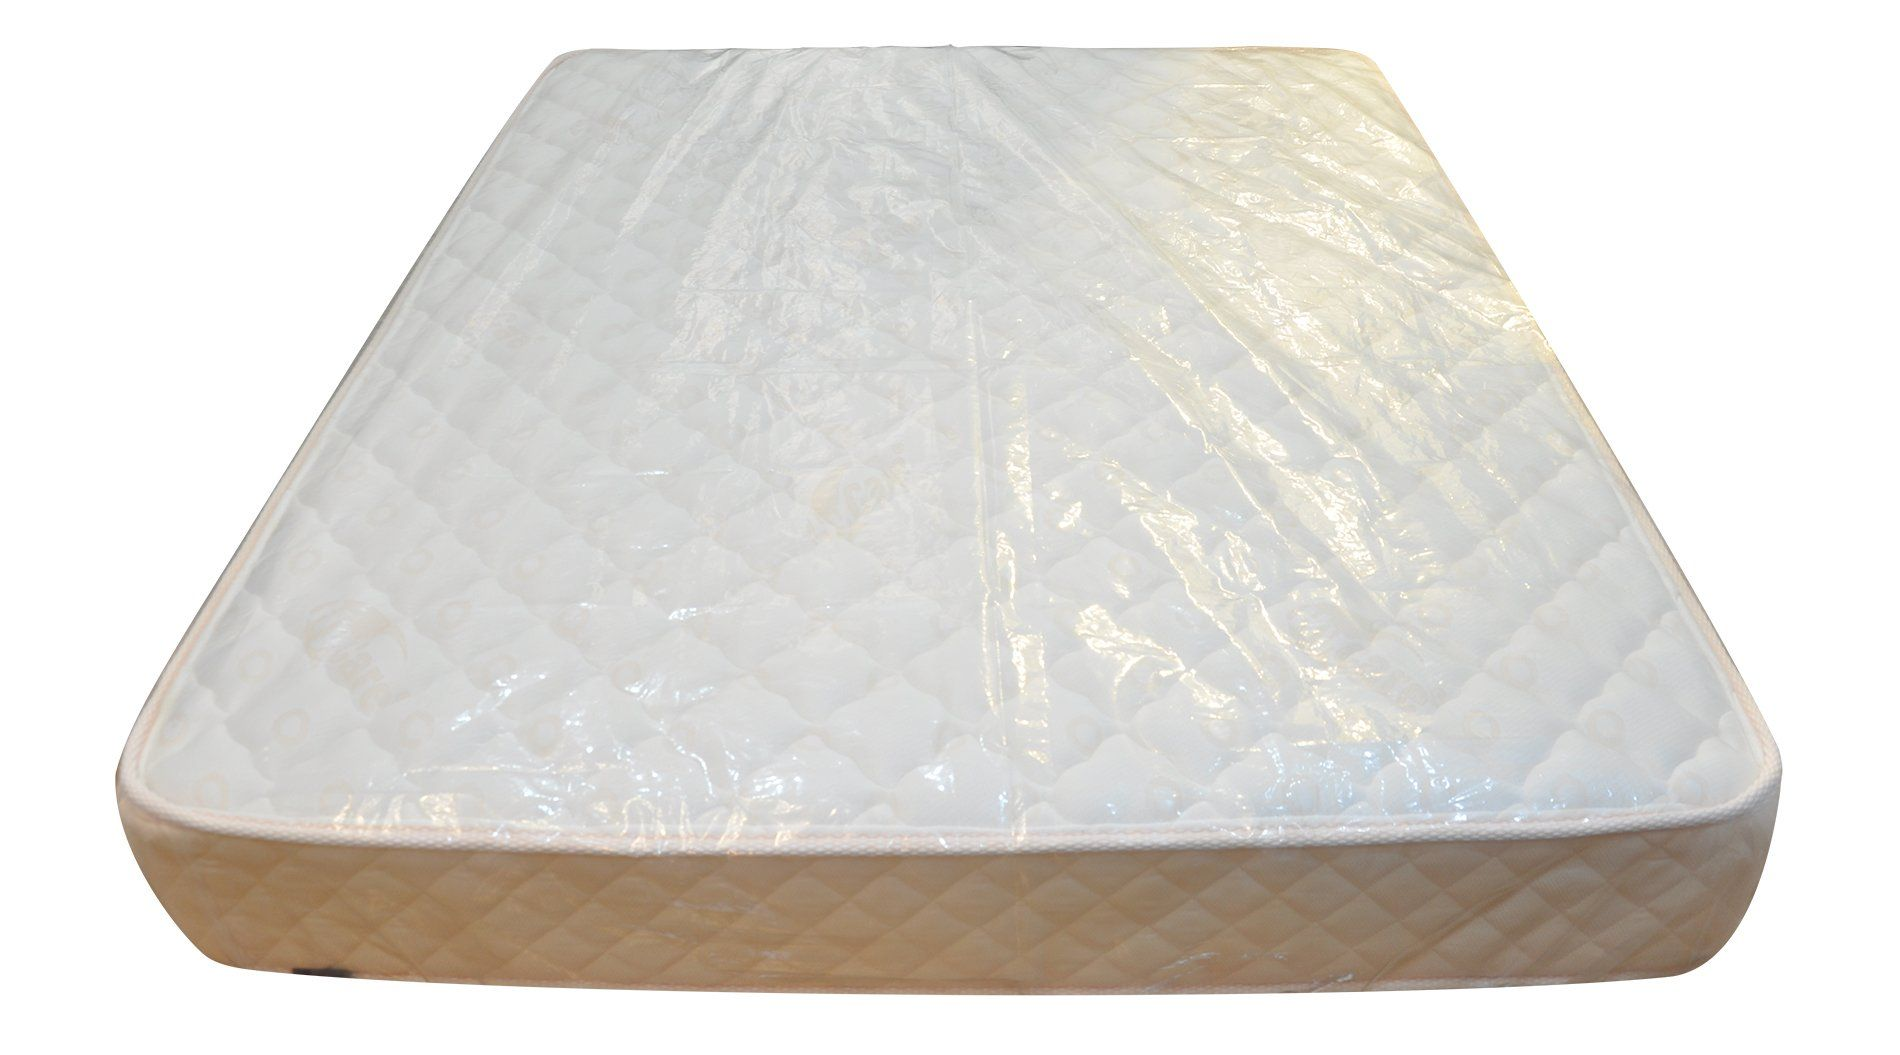 King Queen Full Size Resuable Mattress Bag For Moving And Storage 94 X 106 5 Mil Thick 1 Pack See This Gr Queen Mattress Size Moving And Storage Mattress